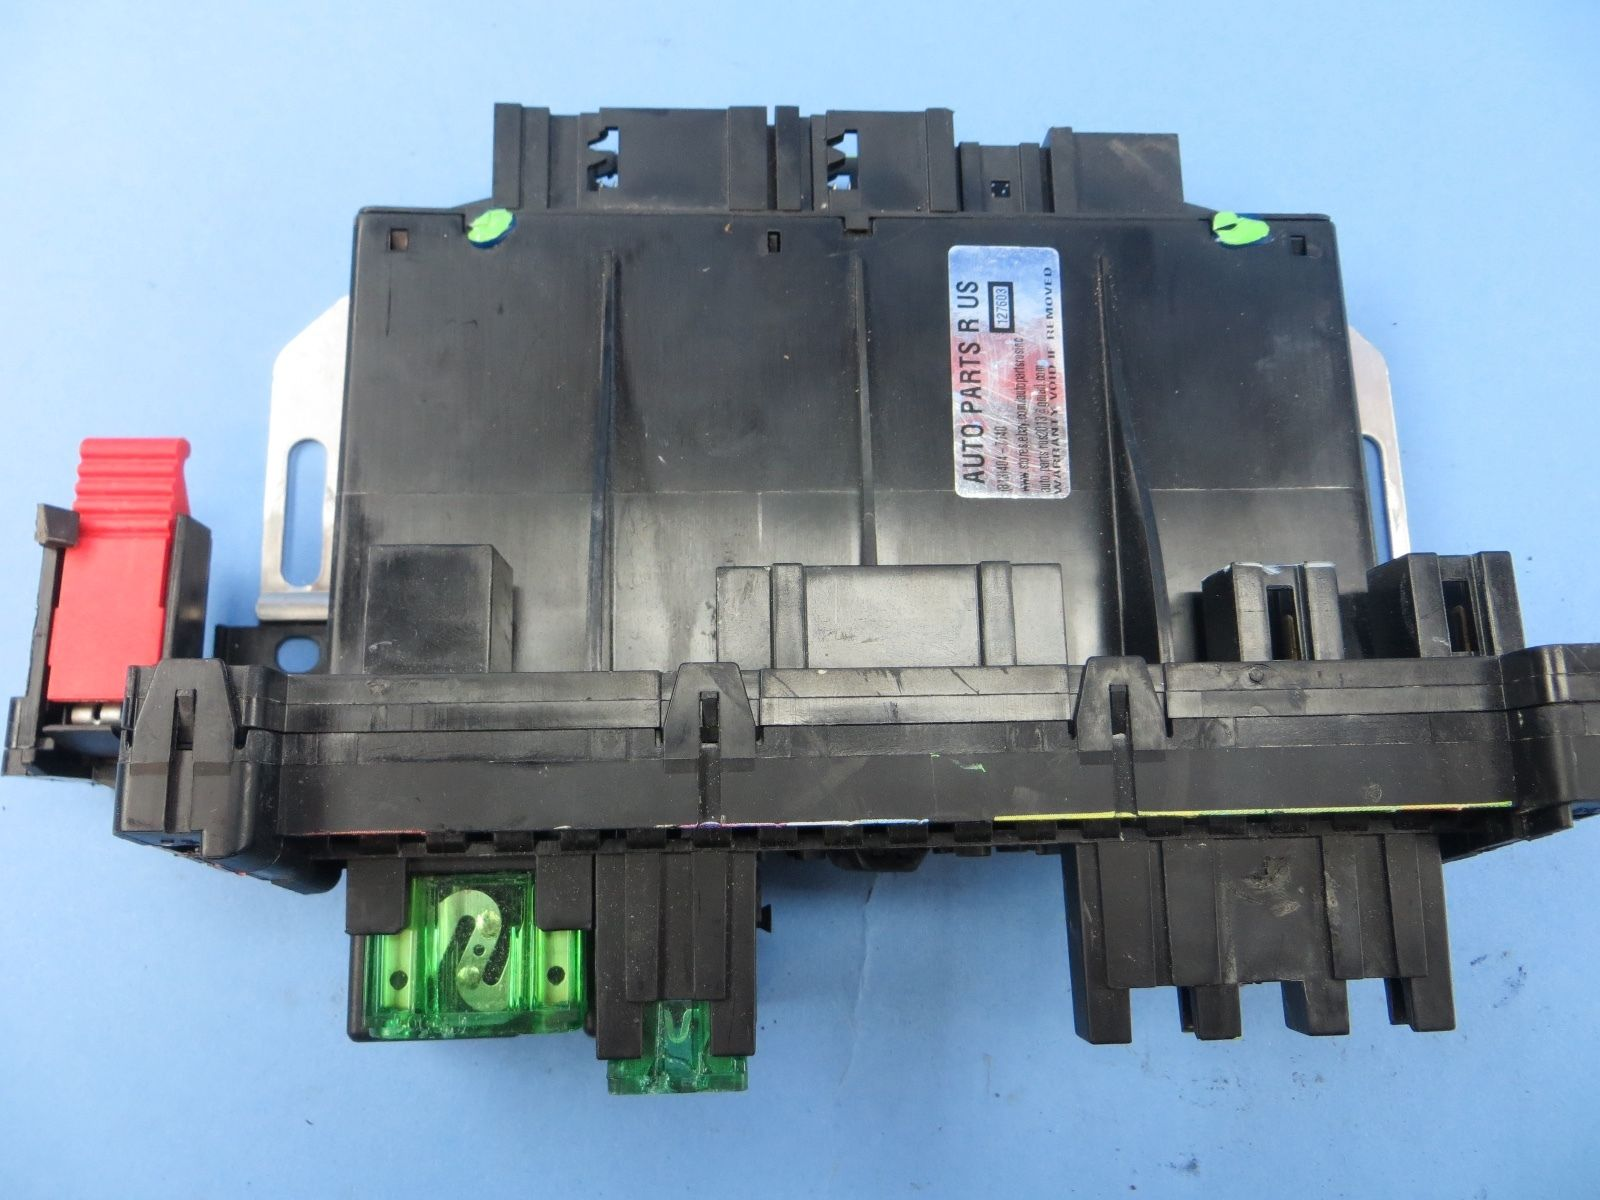 2003 Sl500 Fuse Box Location 28 Wiring Diagram Images 2000 Mercedes Ml320 Bc16c36b A6d9 4450 8a76 30fe38d88808 Rear And Relay Diagrams